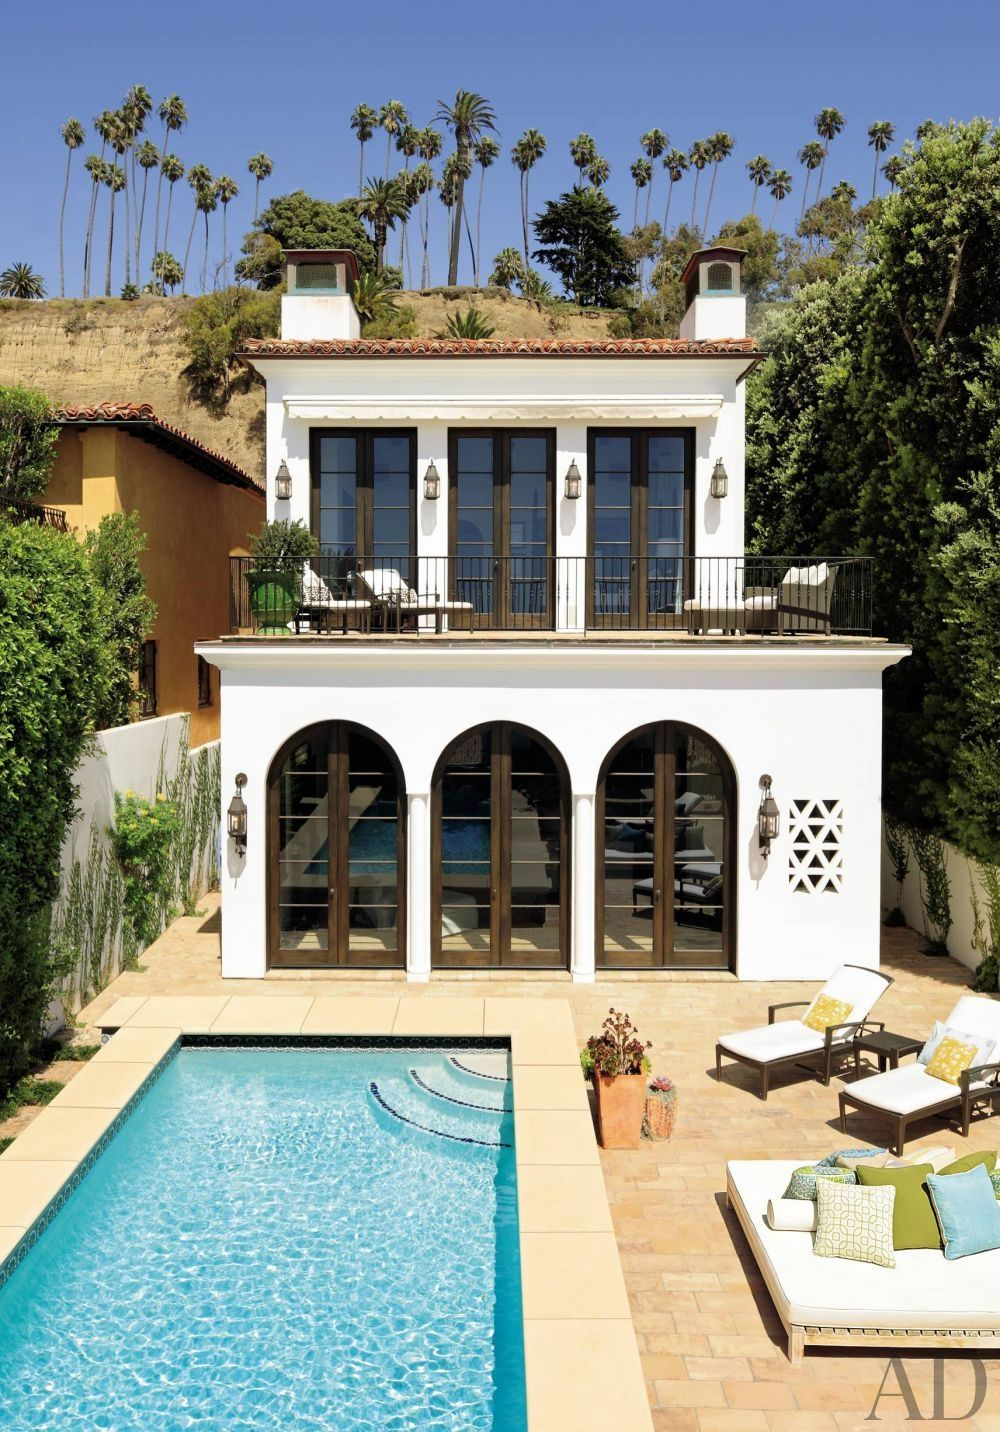 SPANISH COLONIAL REVAMP Modern Pool Behind A Coastal Spanish Colonial Style Home Design